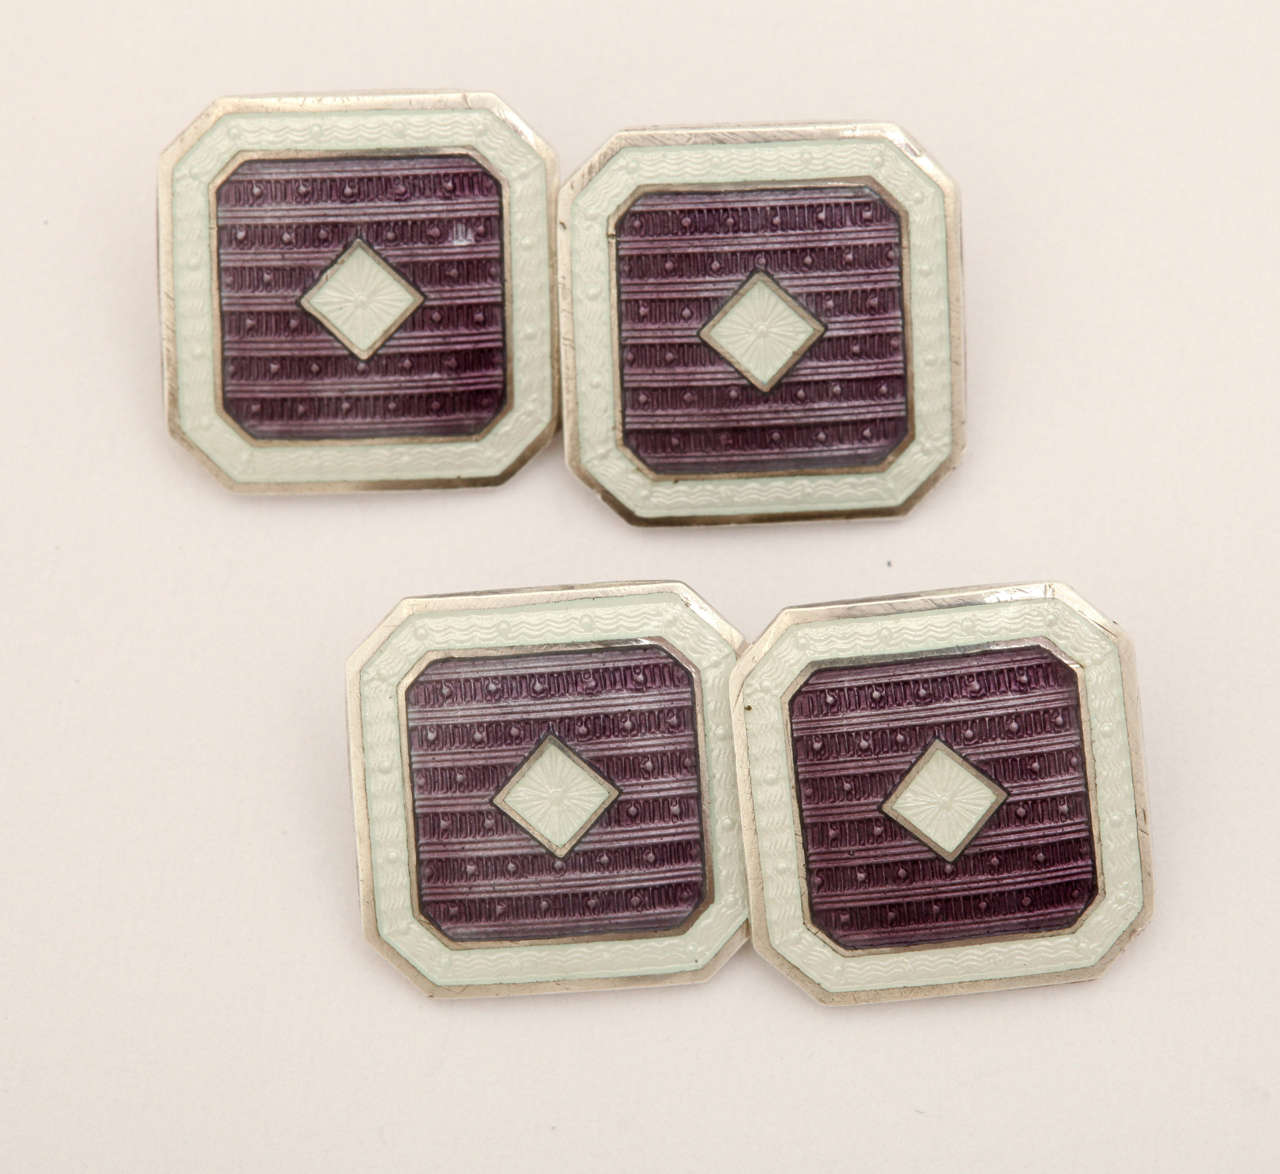 Octagonal with white central diamond surrounded by purple and with a white border. Hallmarks: STERLING